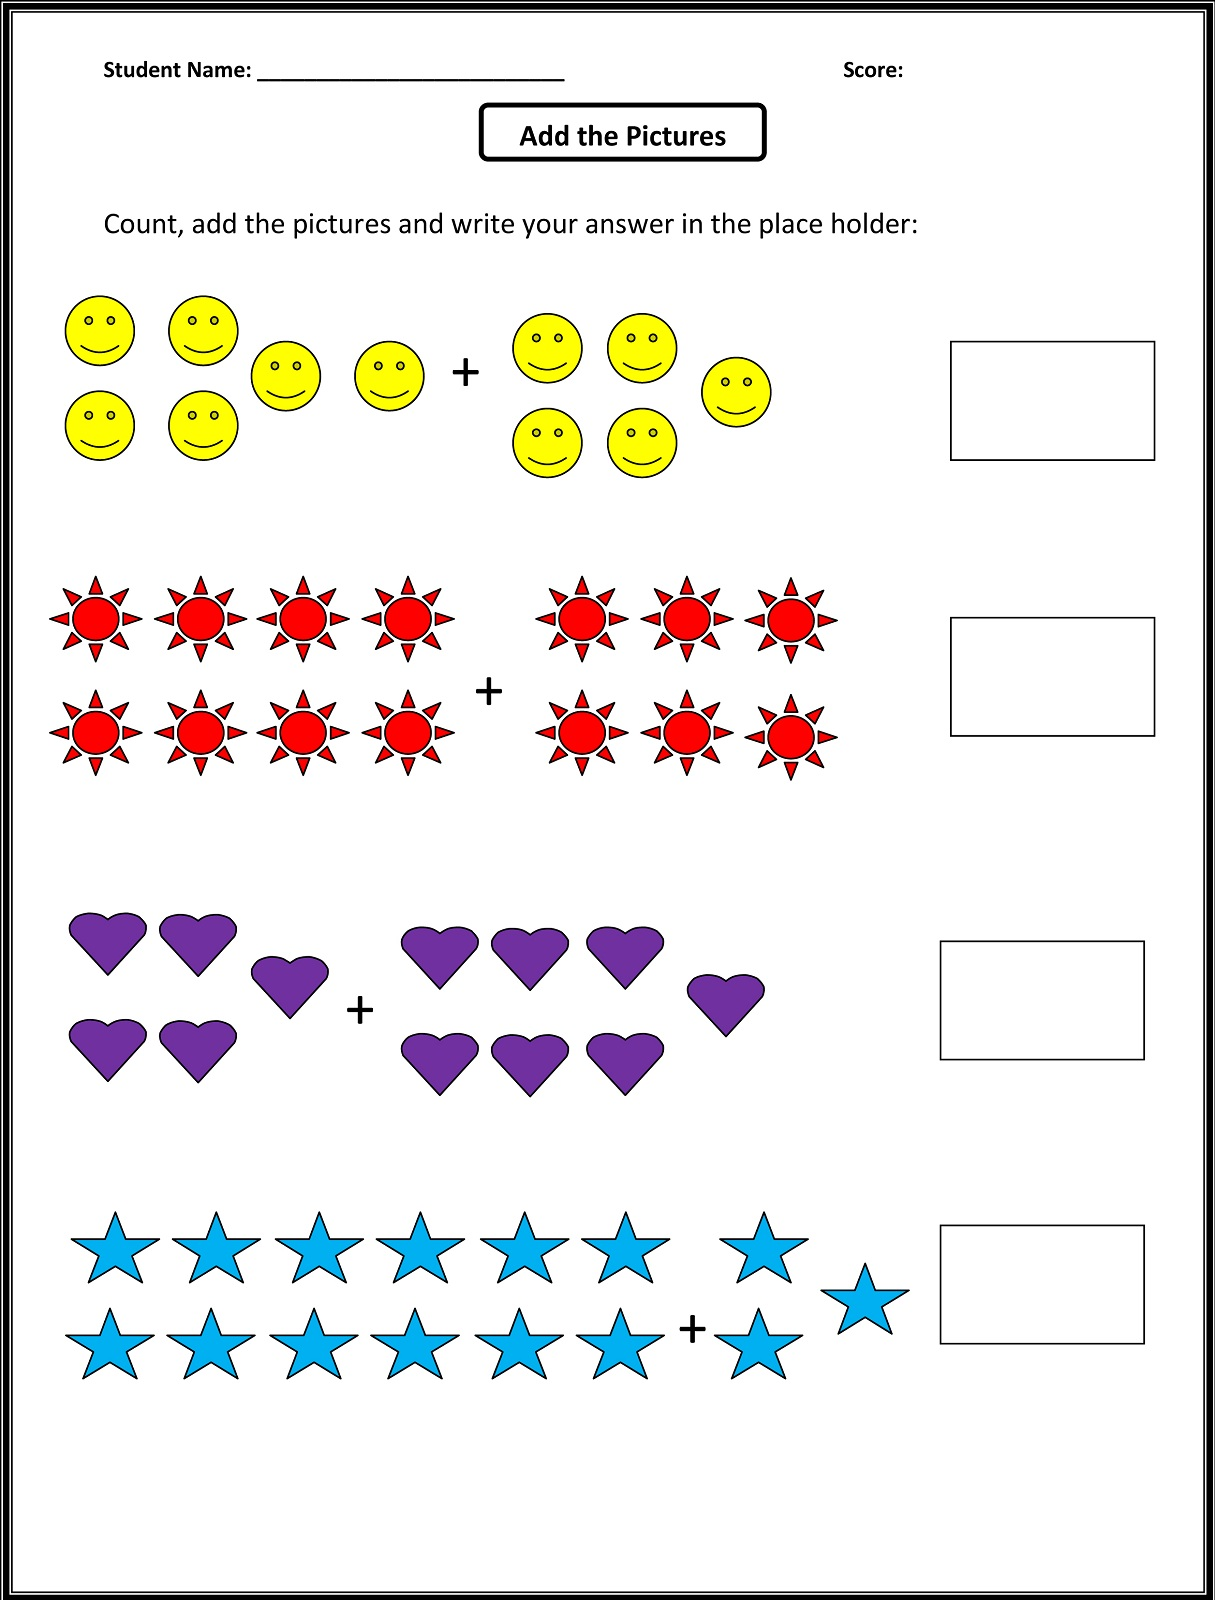 Printables Math 1st Grade Worksheets worksheets for 1st grade math activity shelter image via mathworksheets4kids com